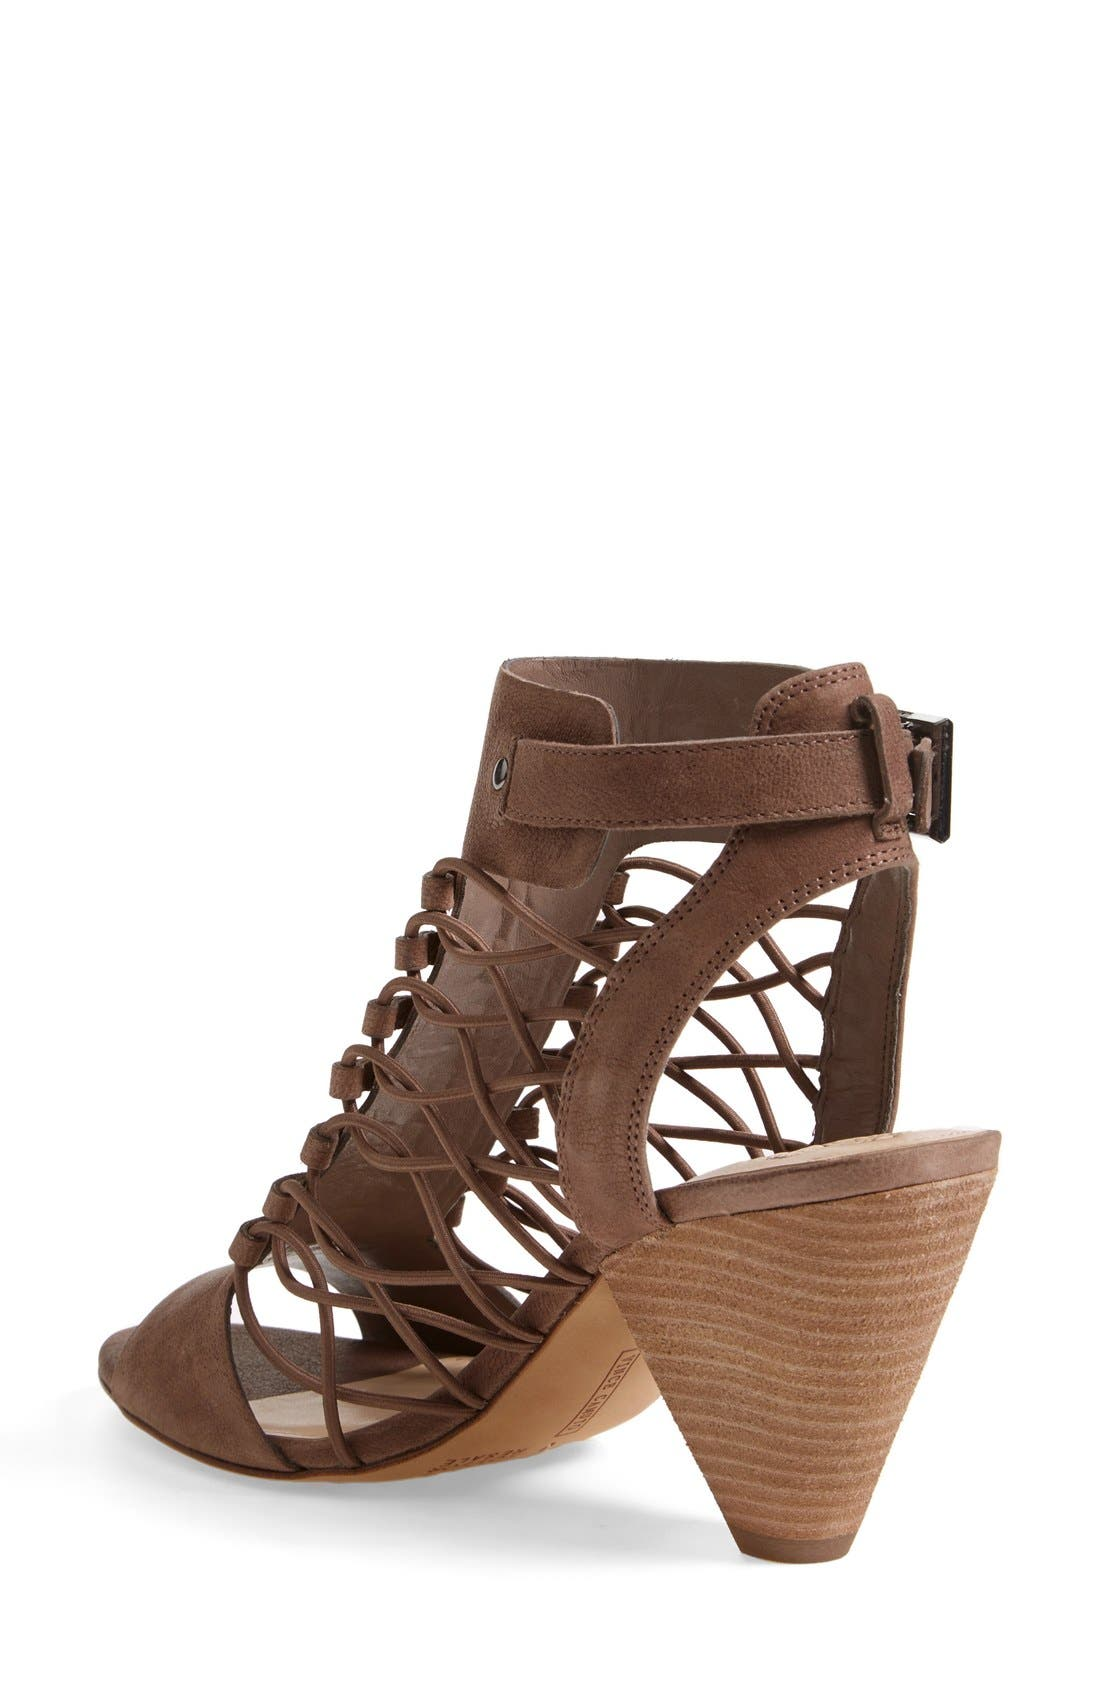 Alternate Image 2  - Vince Camuto 'Evel' Leather Sandal (Women) (Nordstrom Exclusive)